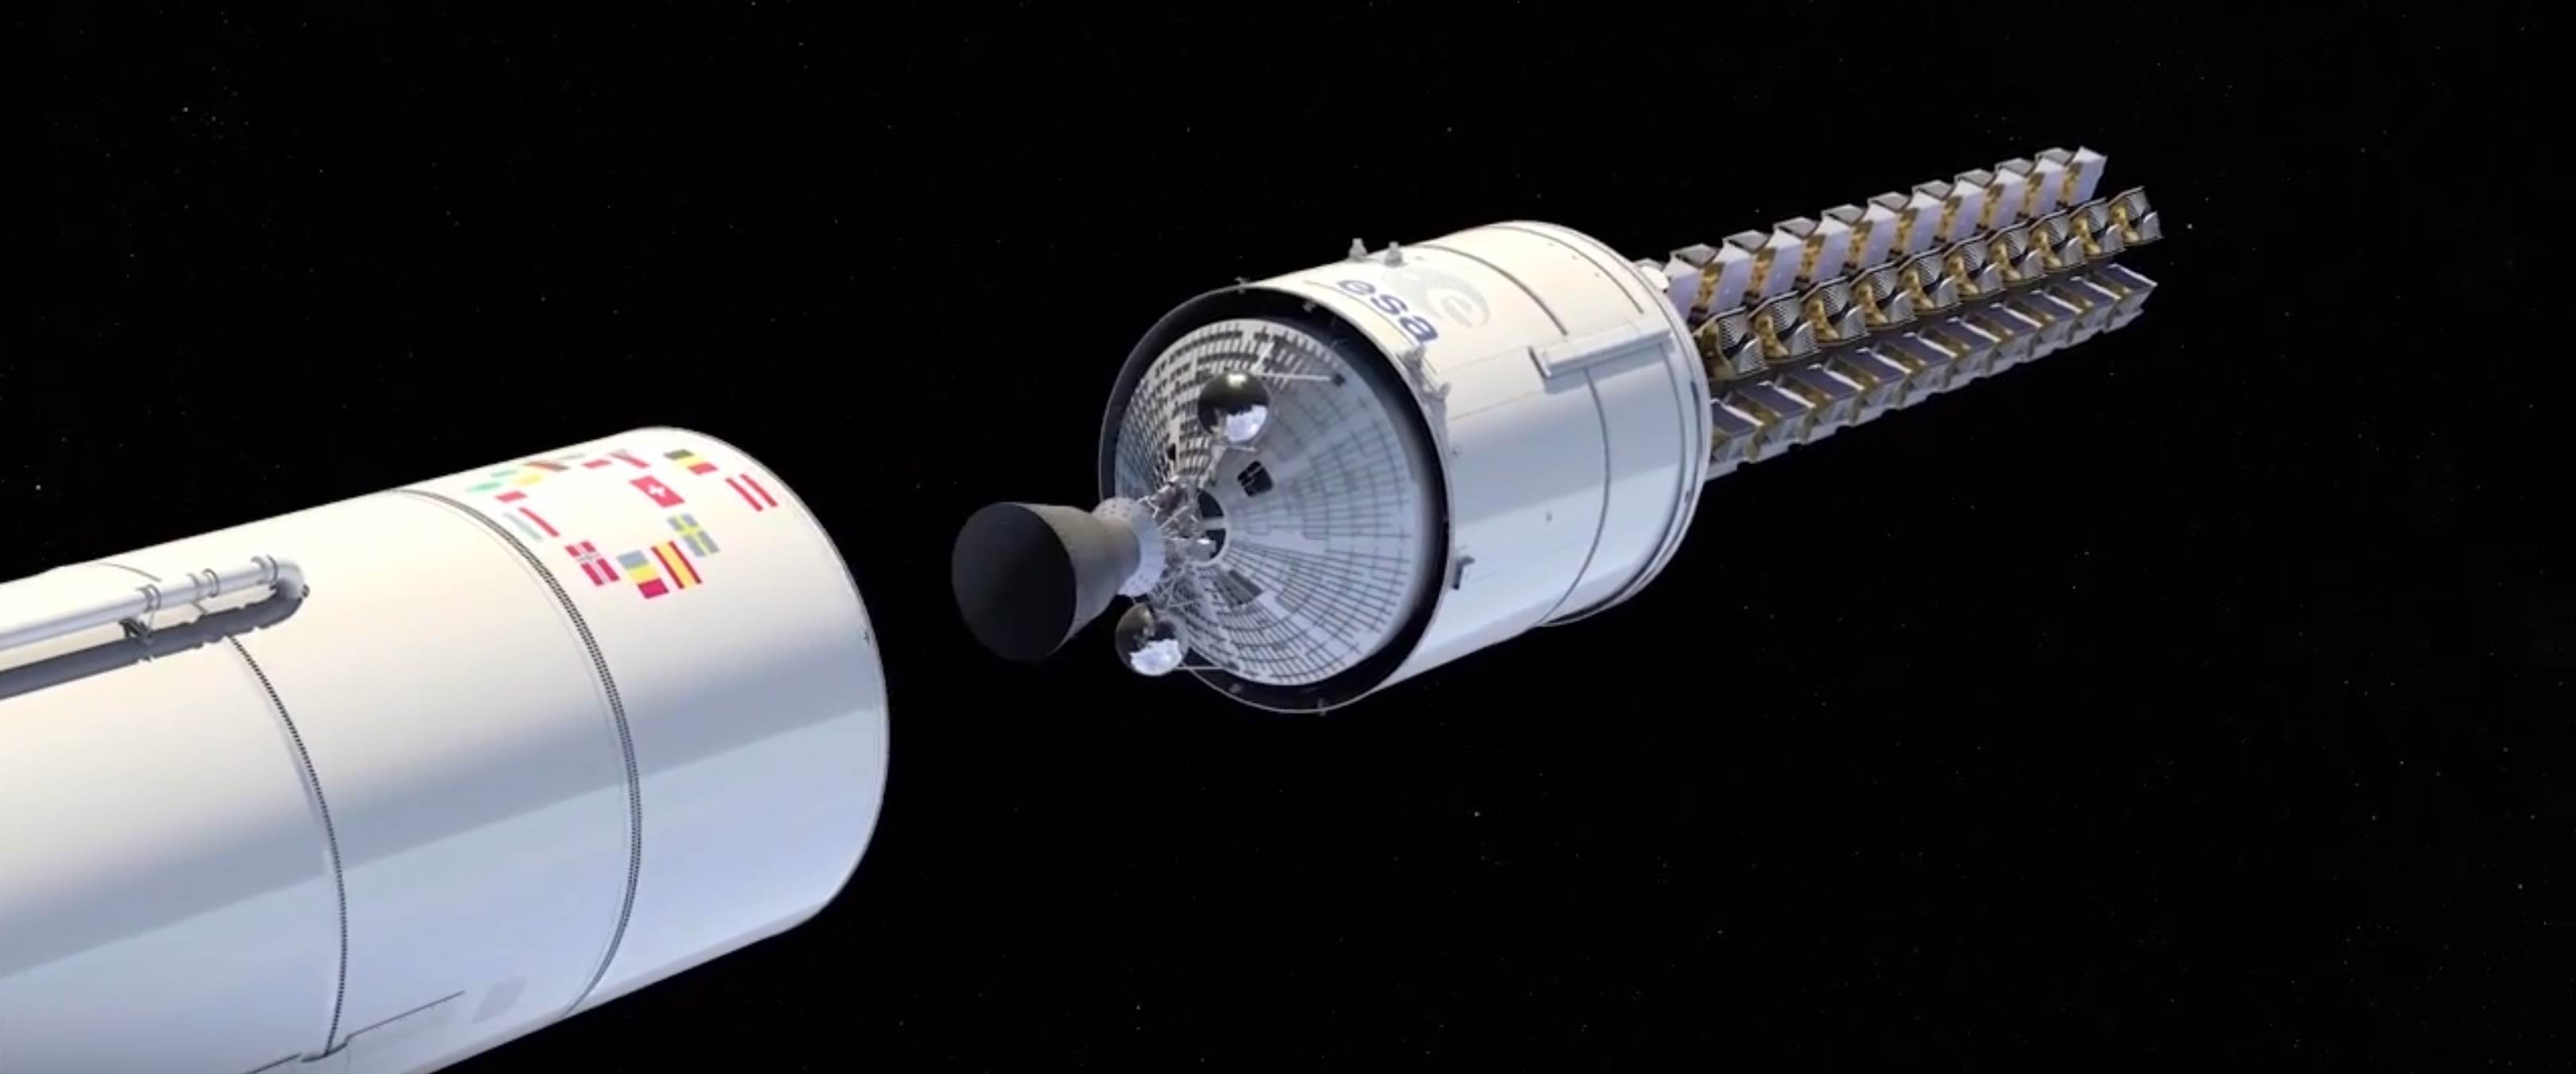 Ariane 6 OneWeb constellation dispenser (Arianespace) 3